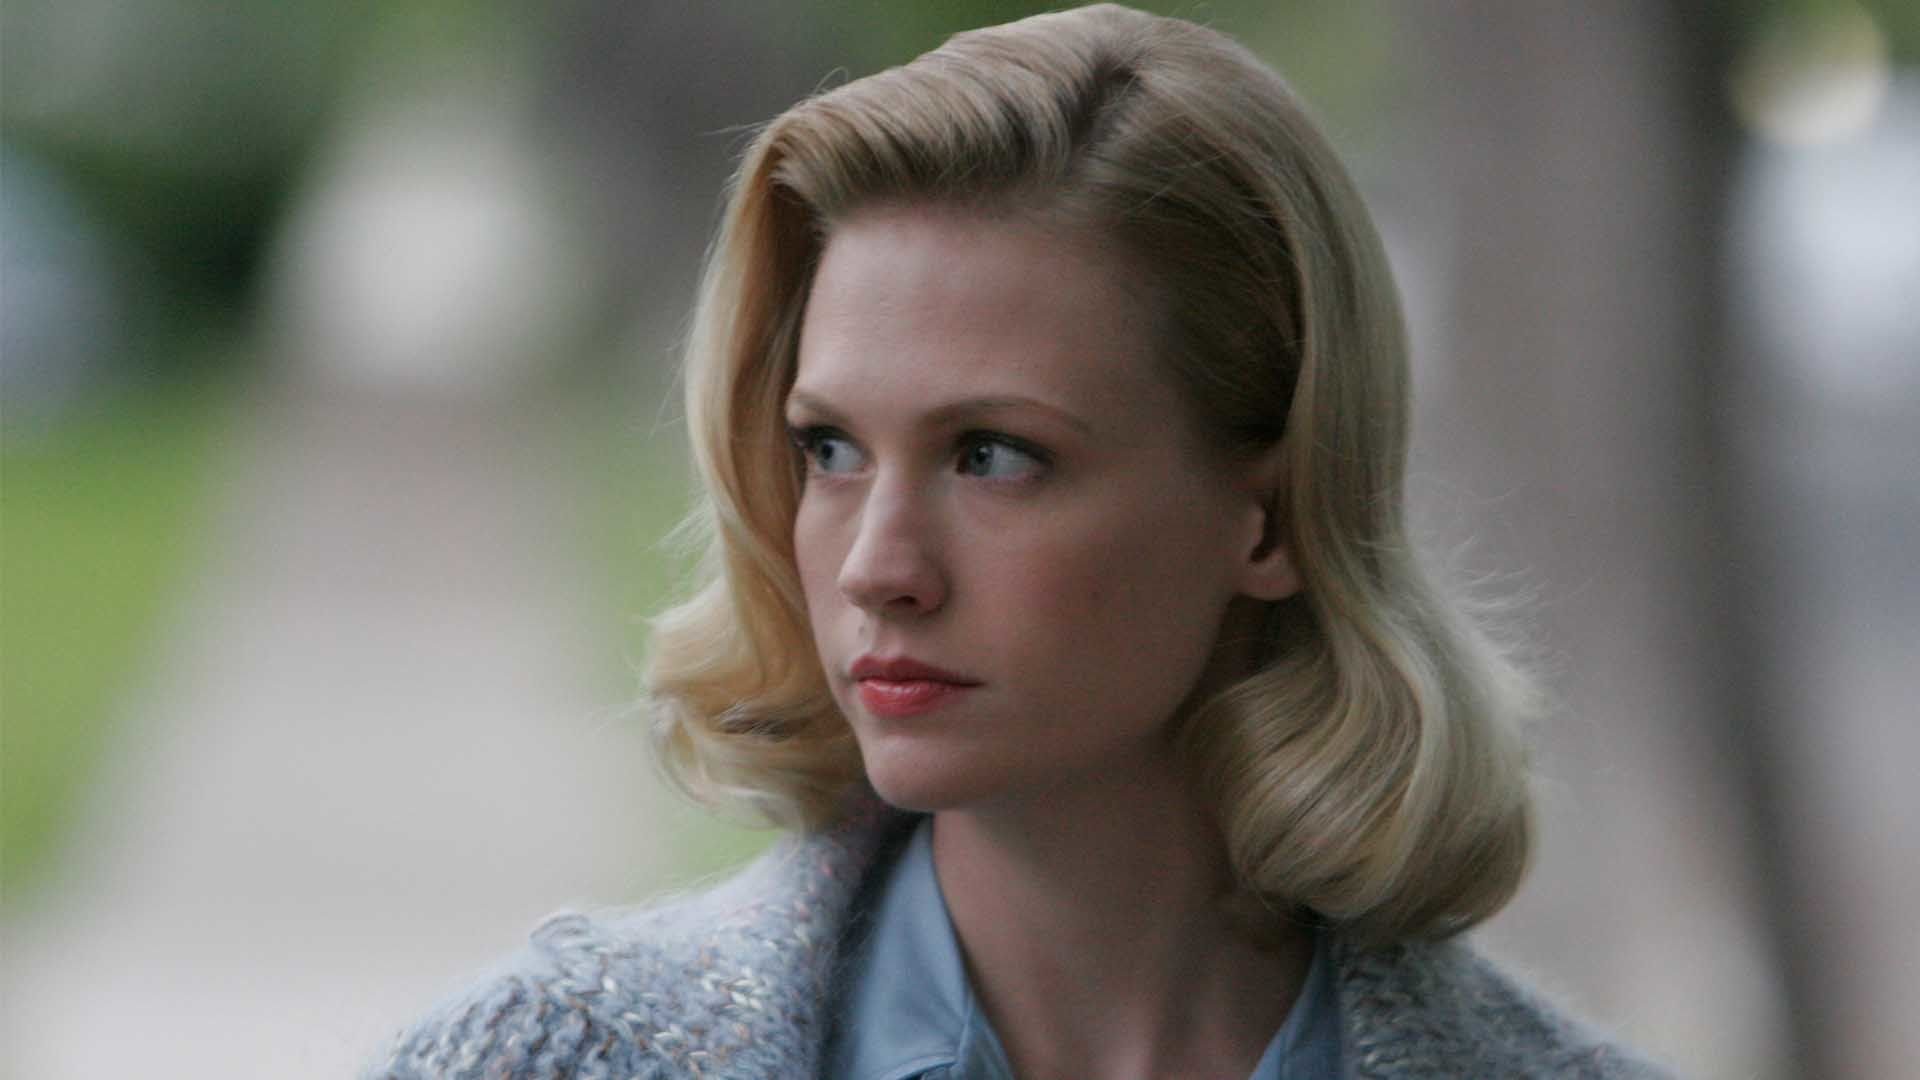 Free Video Extra Mad Men Women's Hairstyles Inside Mad Men Wallpaper